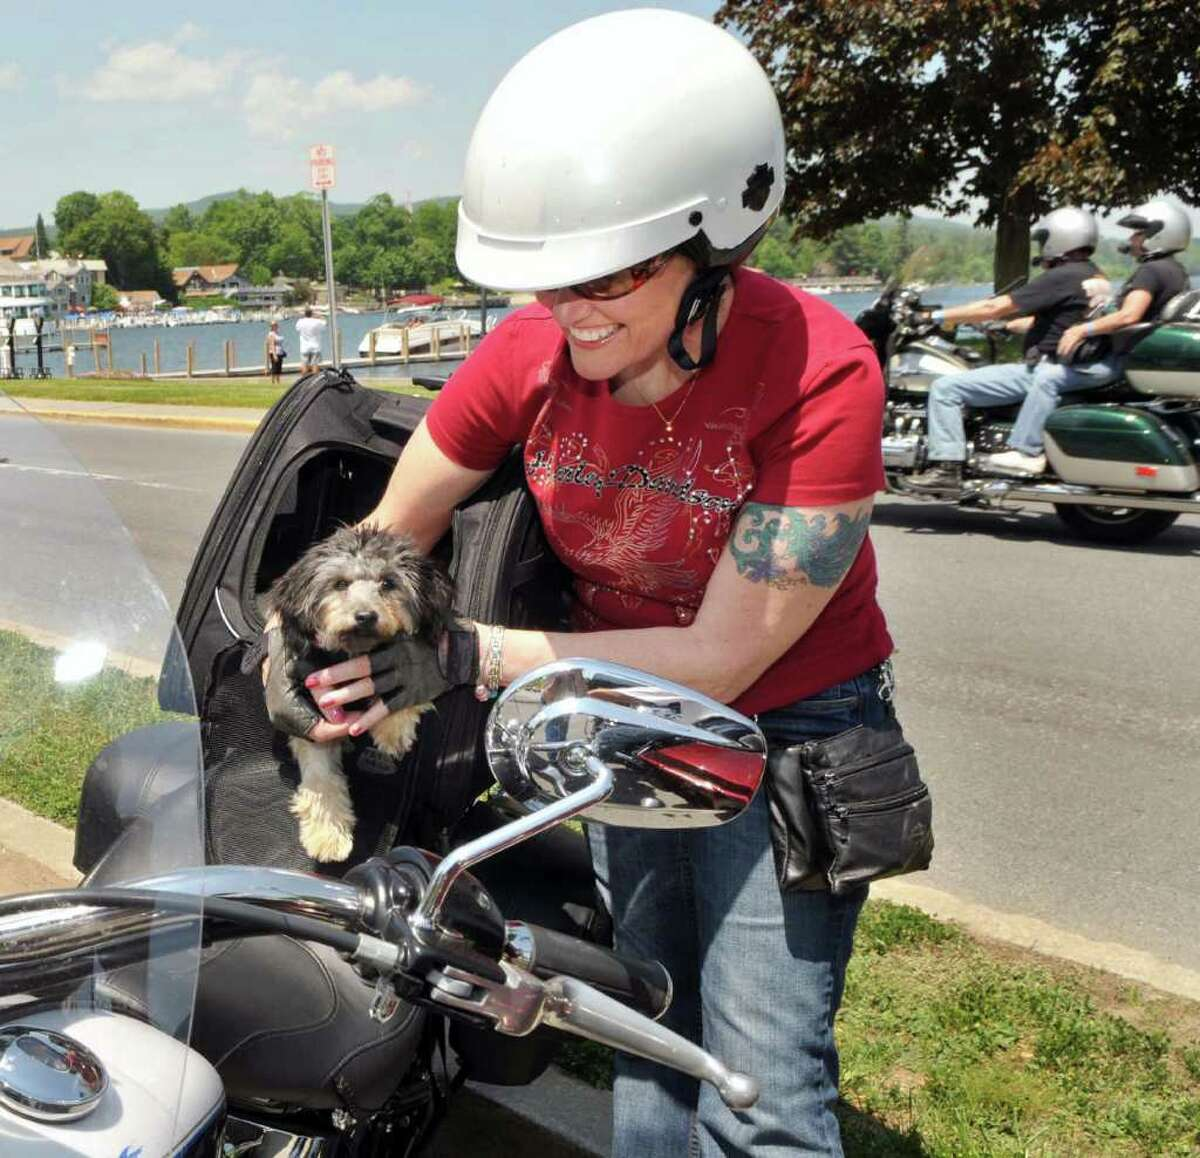 Motorcyclist Michelle Gonsalves of South Paris, Maine fill tucks her 6-month-old puppy